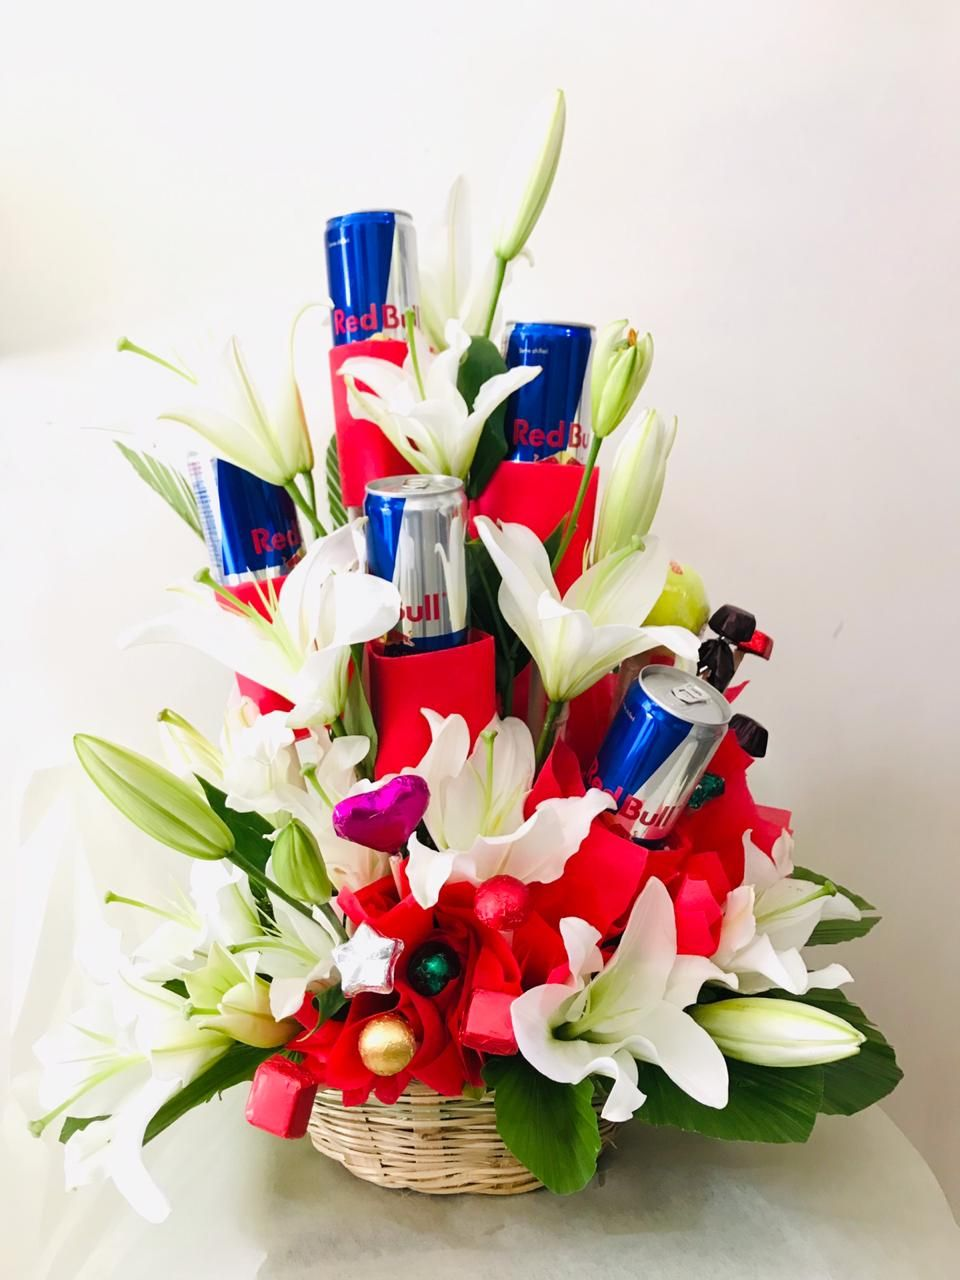 Have you ever seen more bouquet than this? This